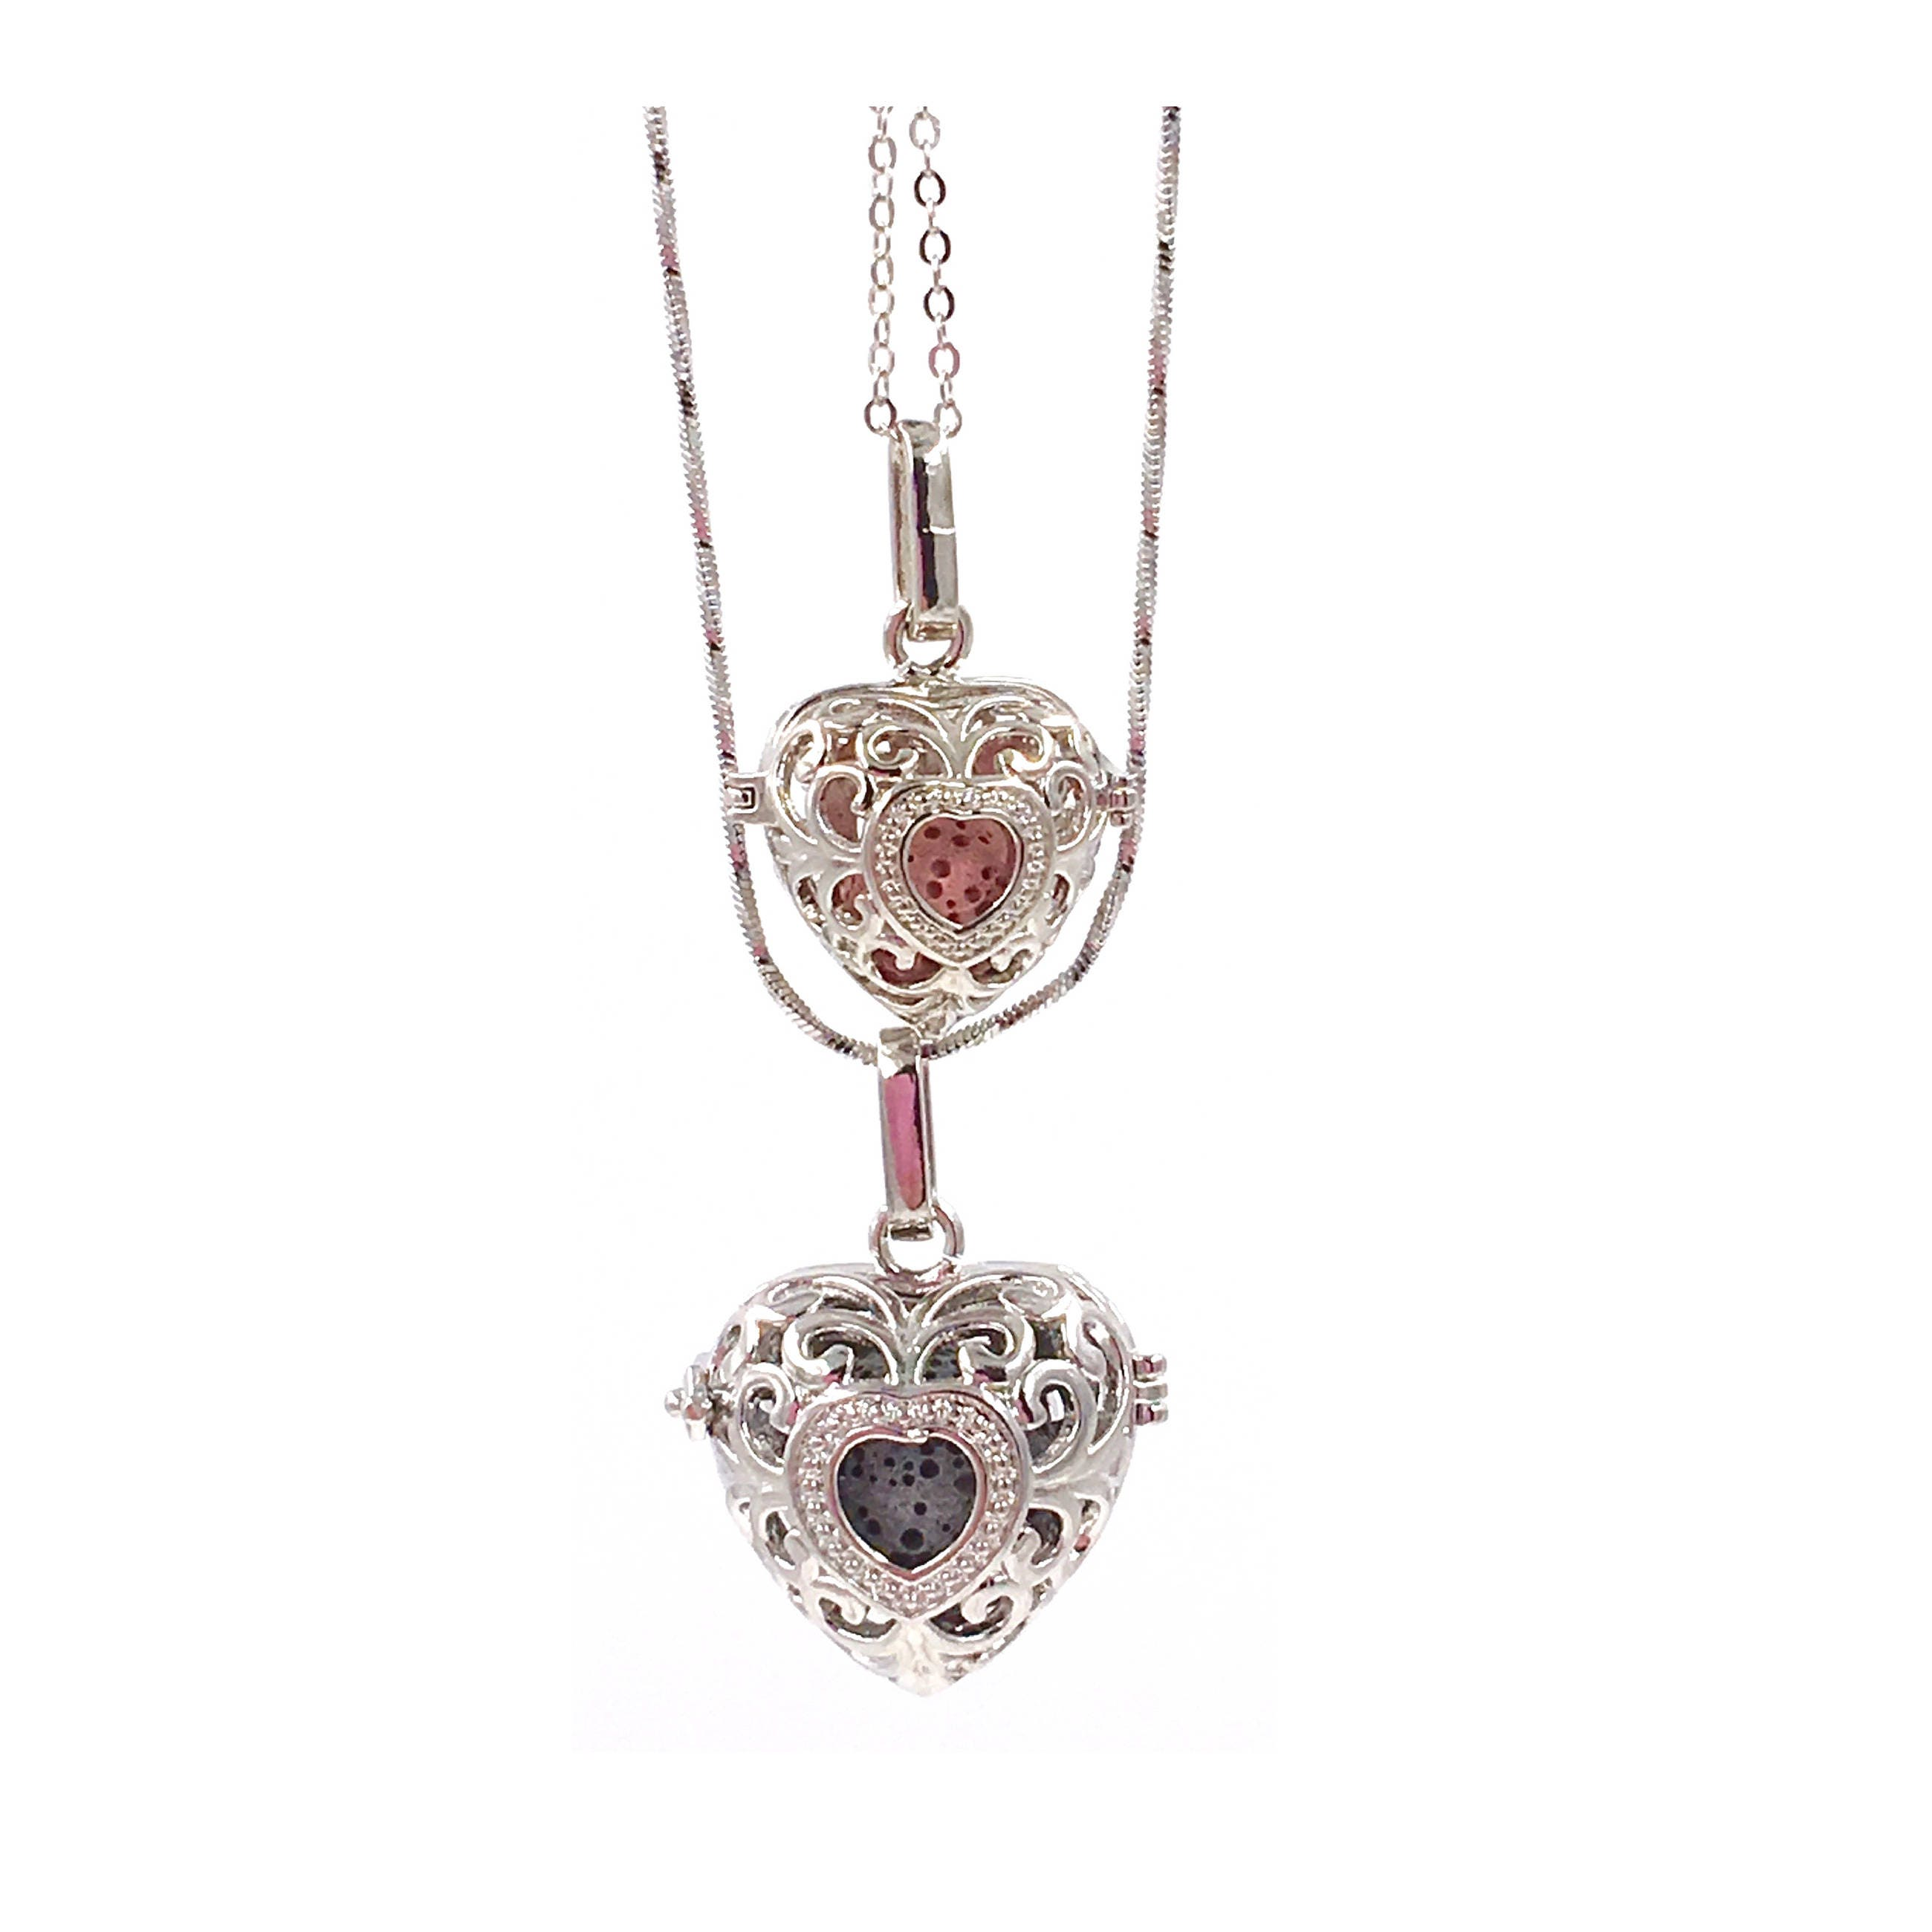 products image of tree locket necklace oil diffuser freckle essential life face